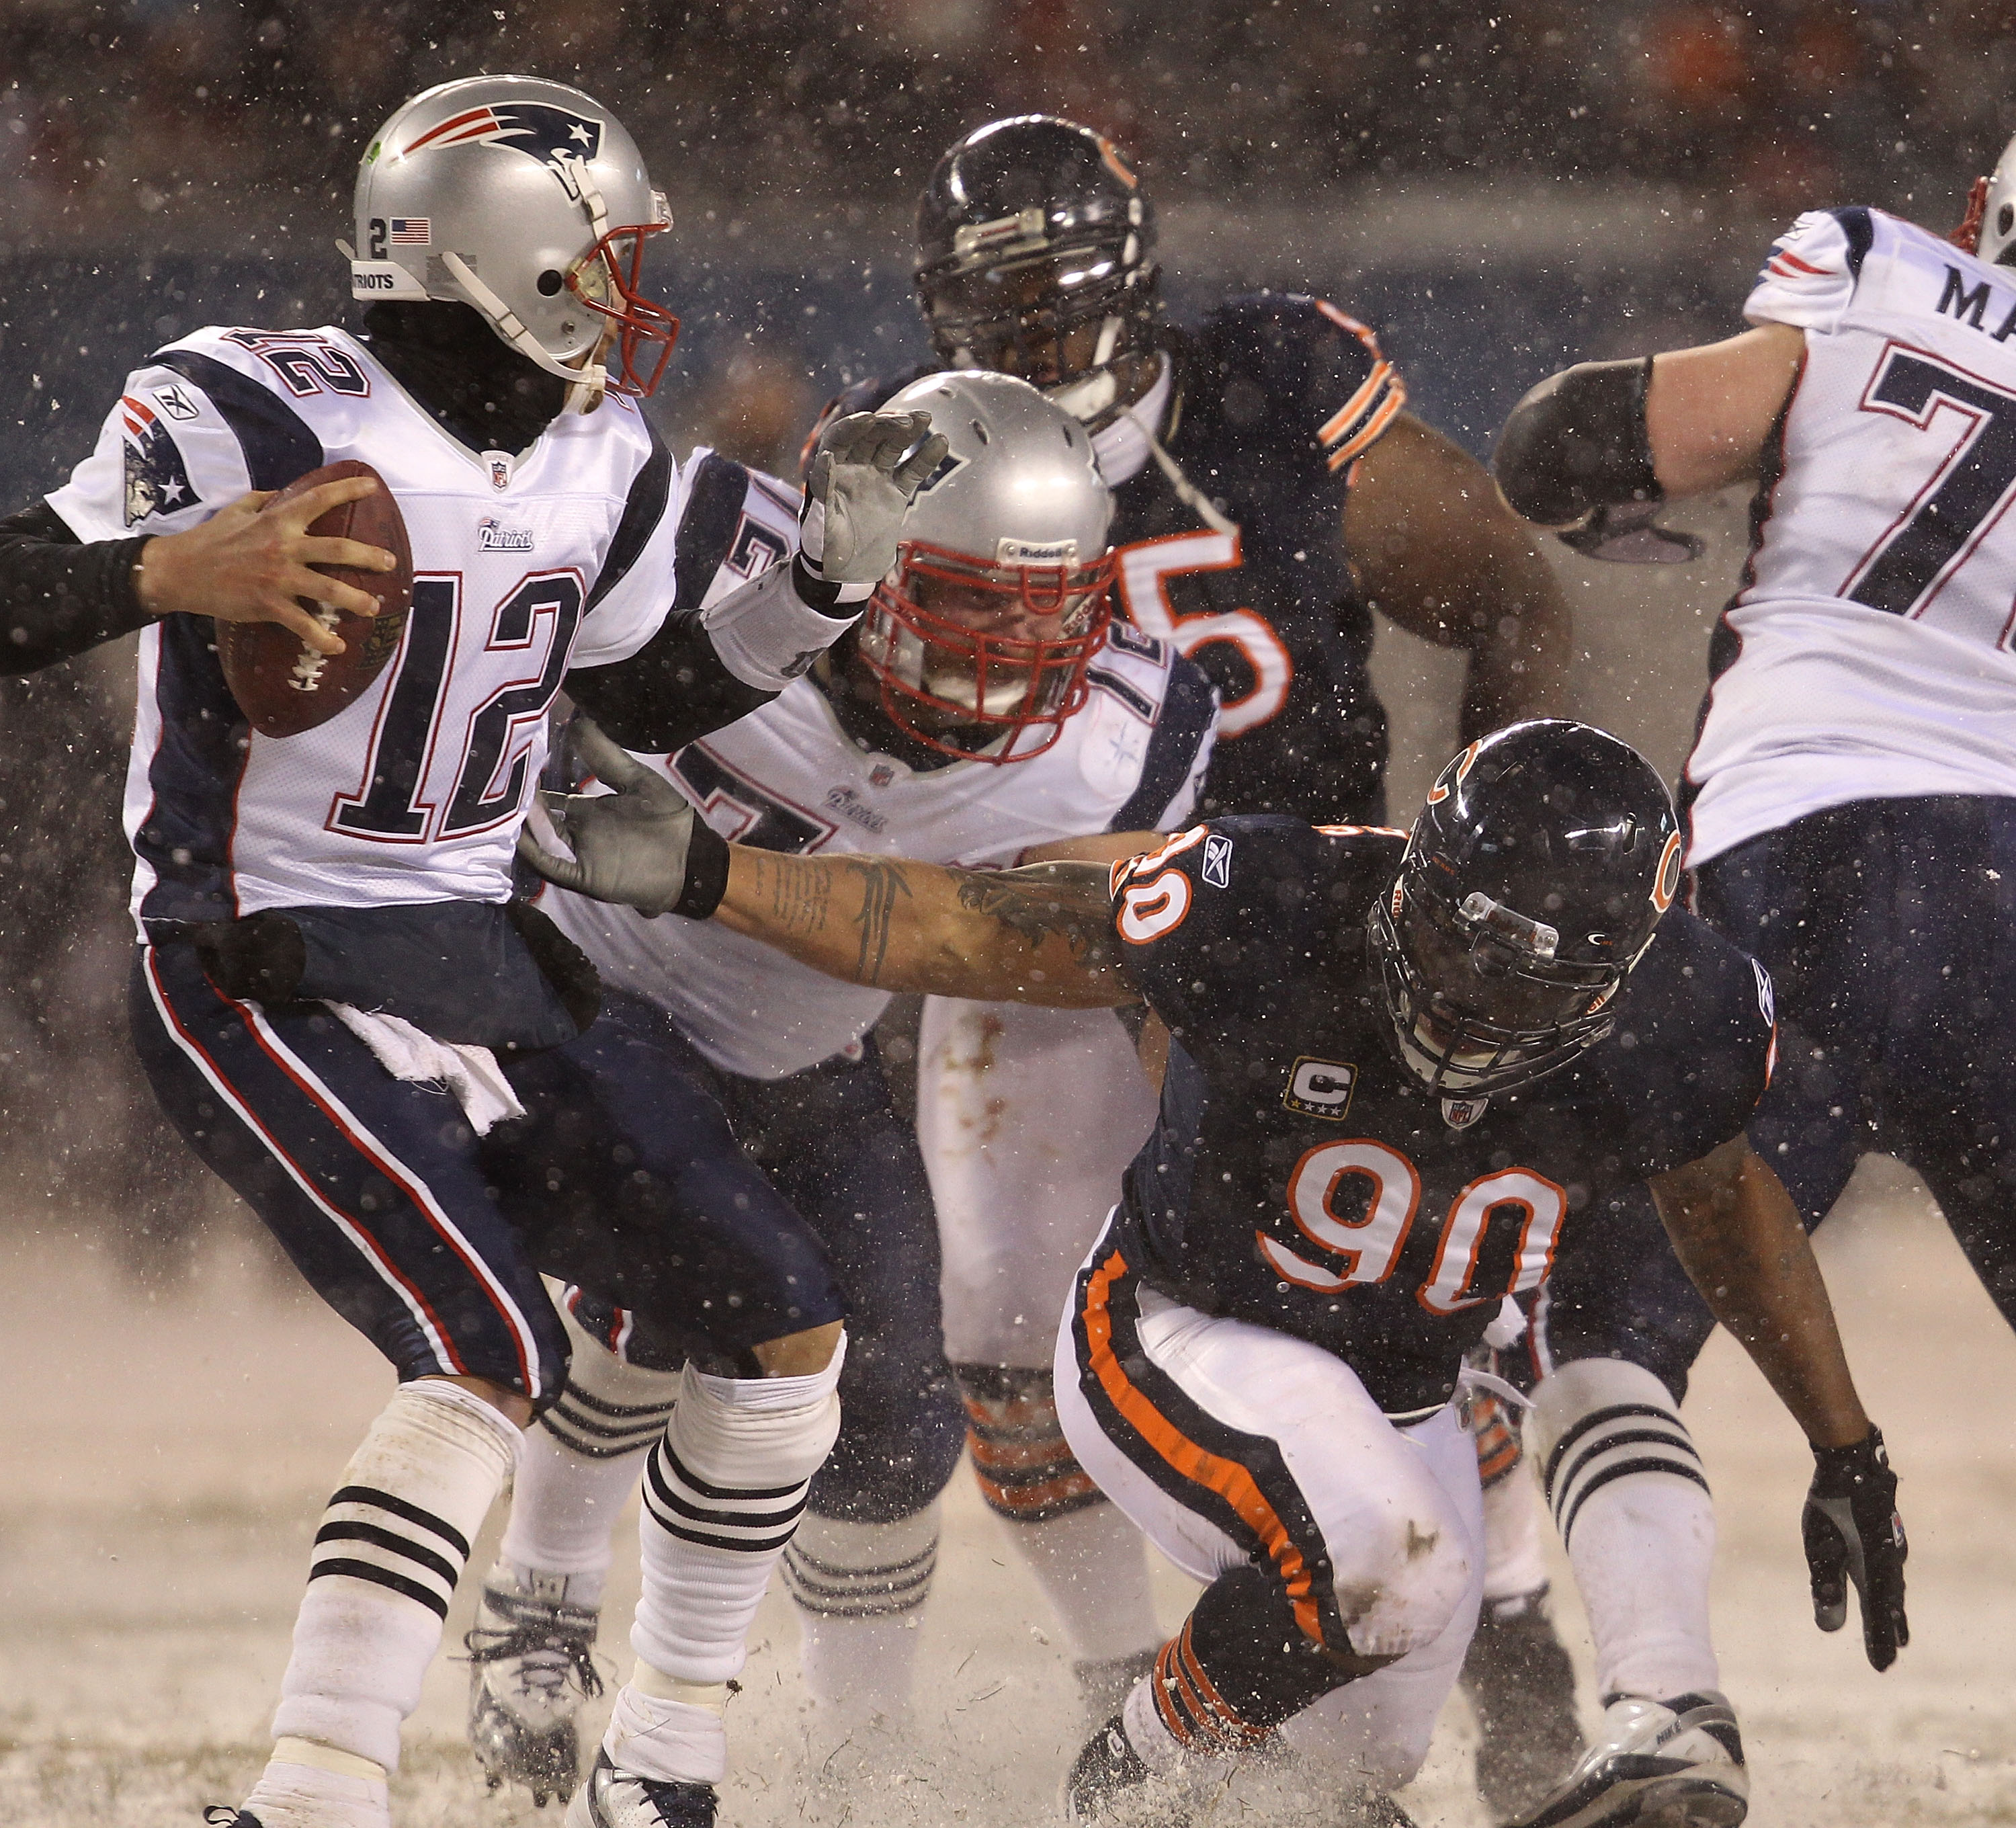 CHICAGO - DECEMBER 12: Julius Peppers #90 of the Chicago Bears slips as he grabs Tom Brady #12 of the New England Patriots at Soldier Field on December 12, 2010 in Chicago, Illinois. The Patriots defeated the Bears 36-7. (Photo by Jonathan Daniel/Getty Im